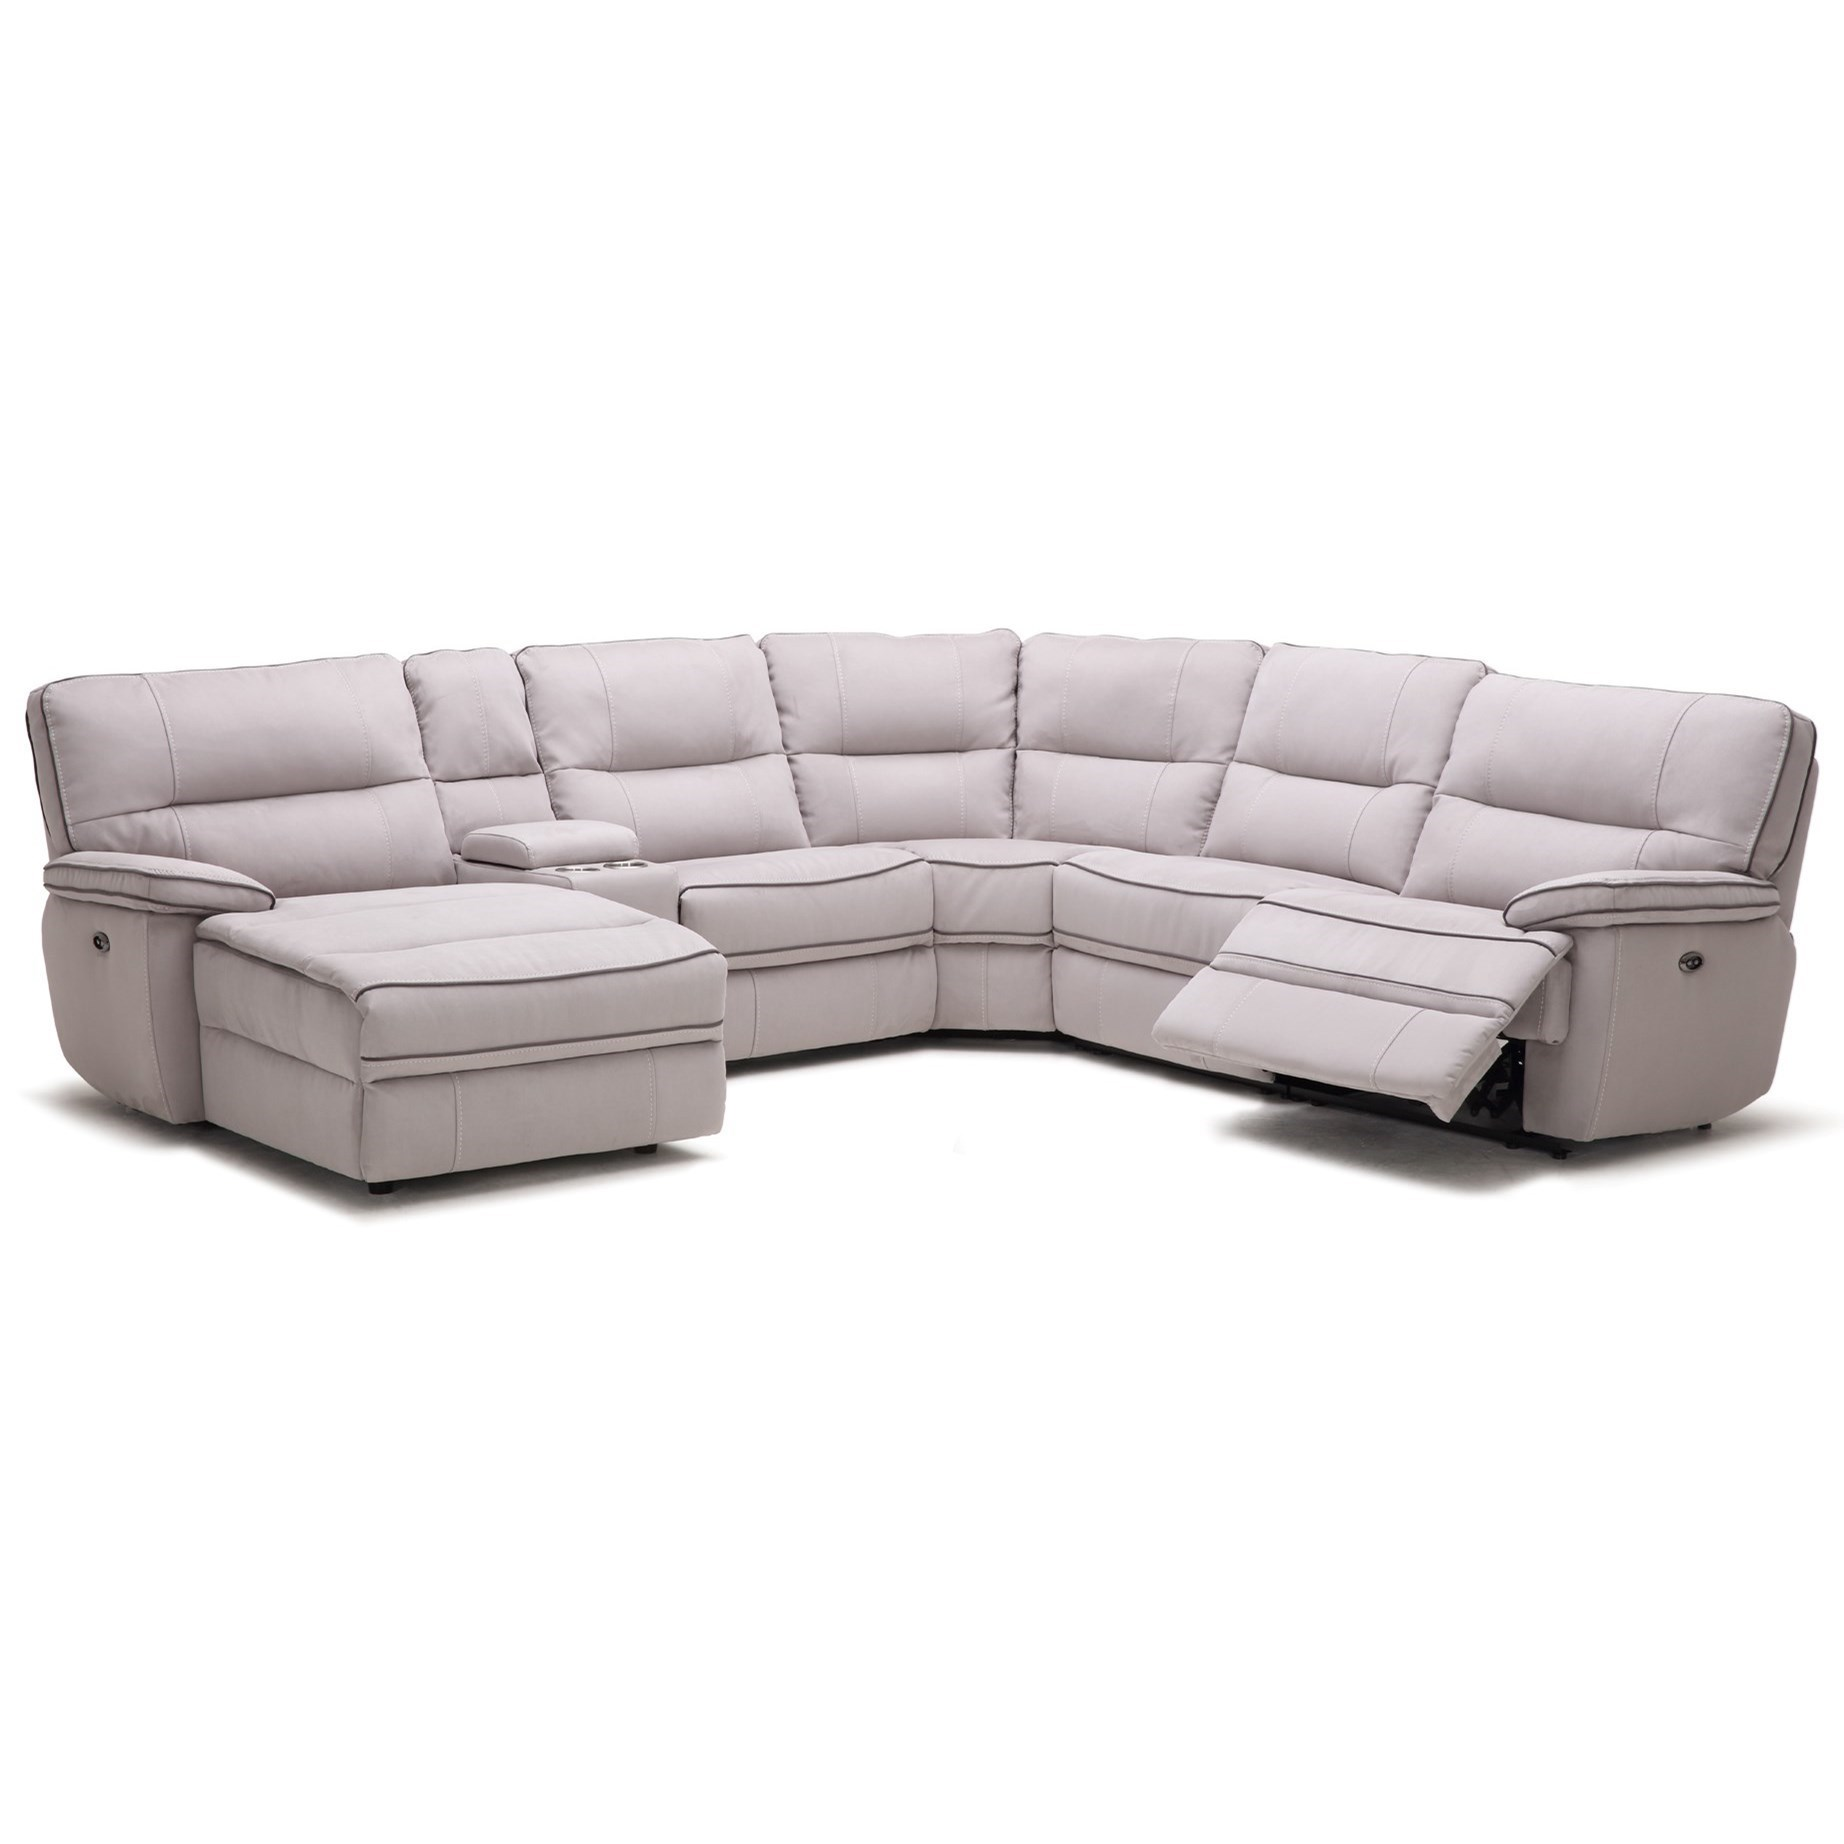 KM019 Six Piece Power Reclining Sectional Sofa with Cupholder Storage Console by Kuka Home  sc 1 st  Becku0027s Furniture & Kuka Home KM019 Six Piece Power Reclining Sectional Sofa with ... islam-shia.org